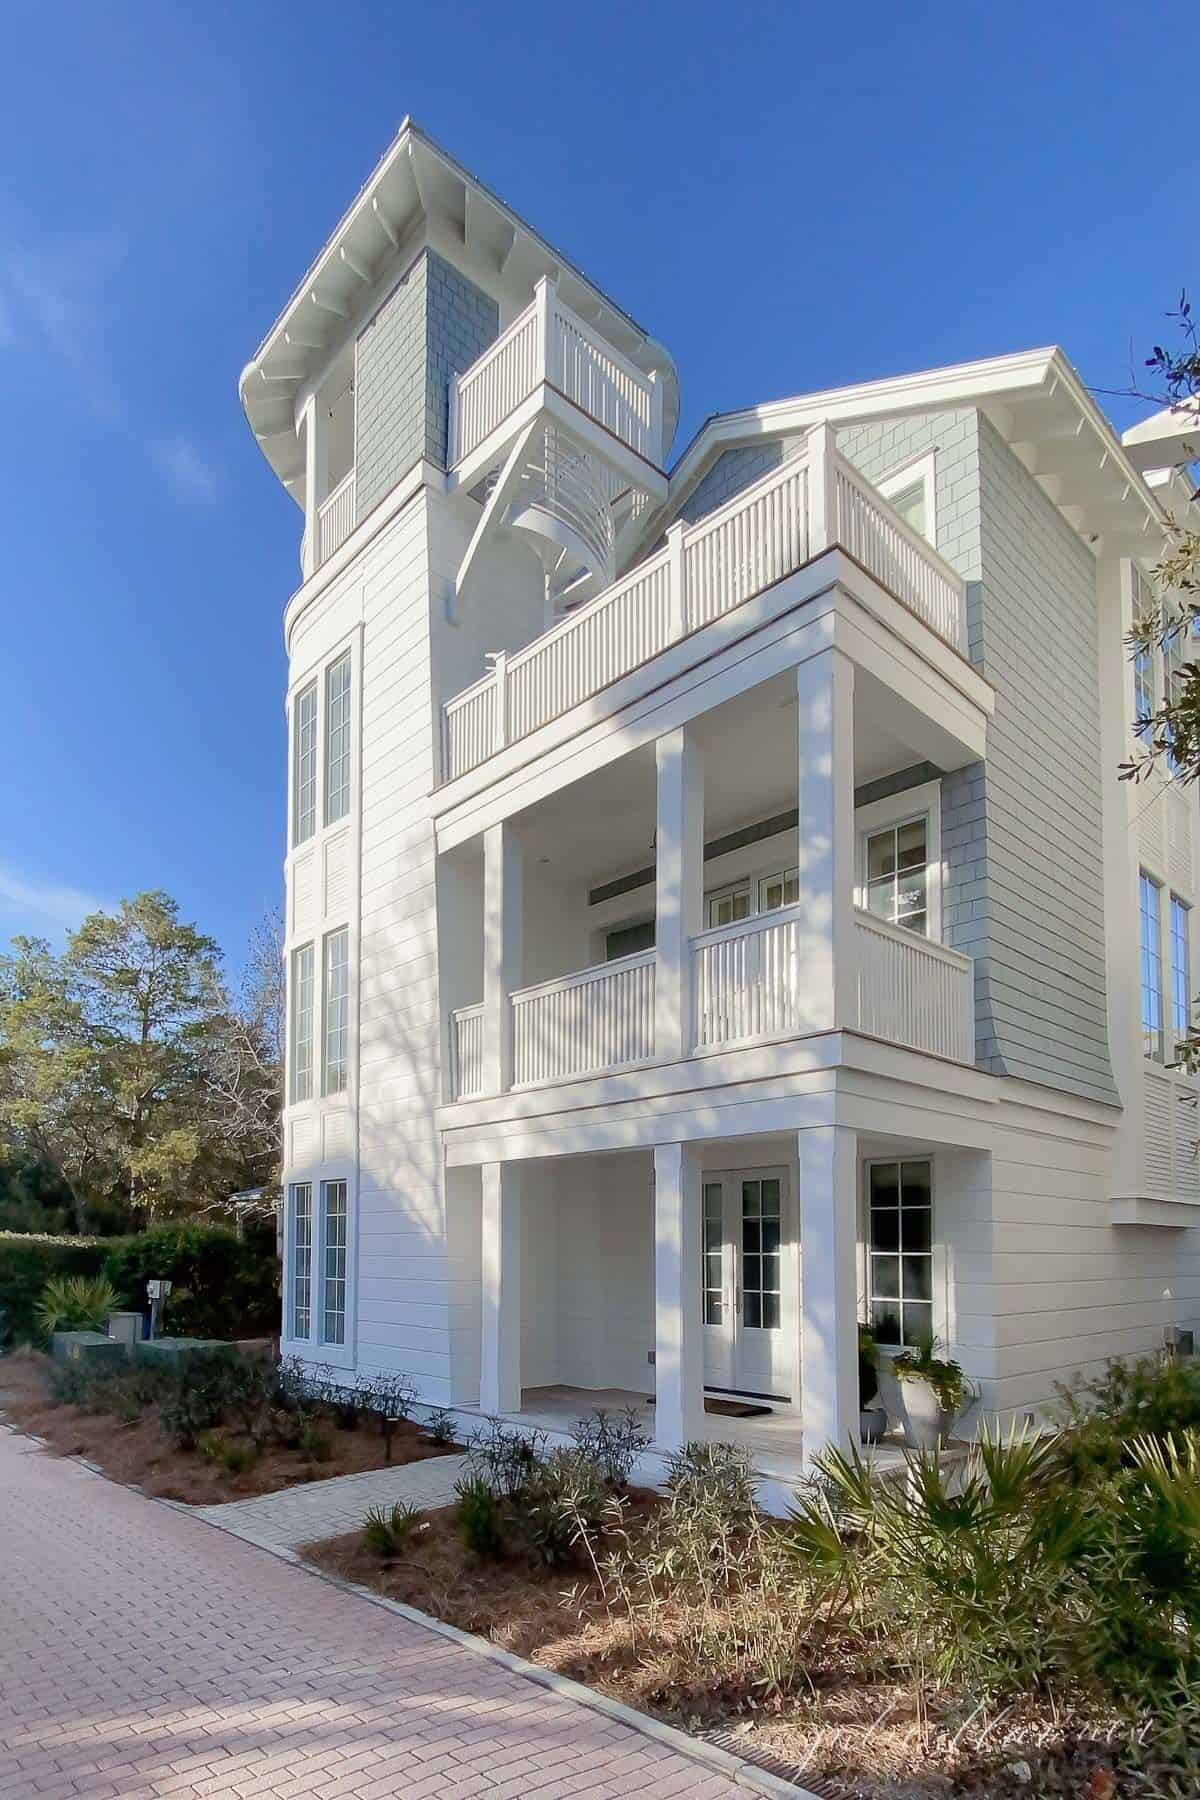 A charming three story white beach house with a white front porch in Seaside Florida